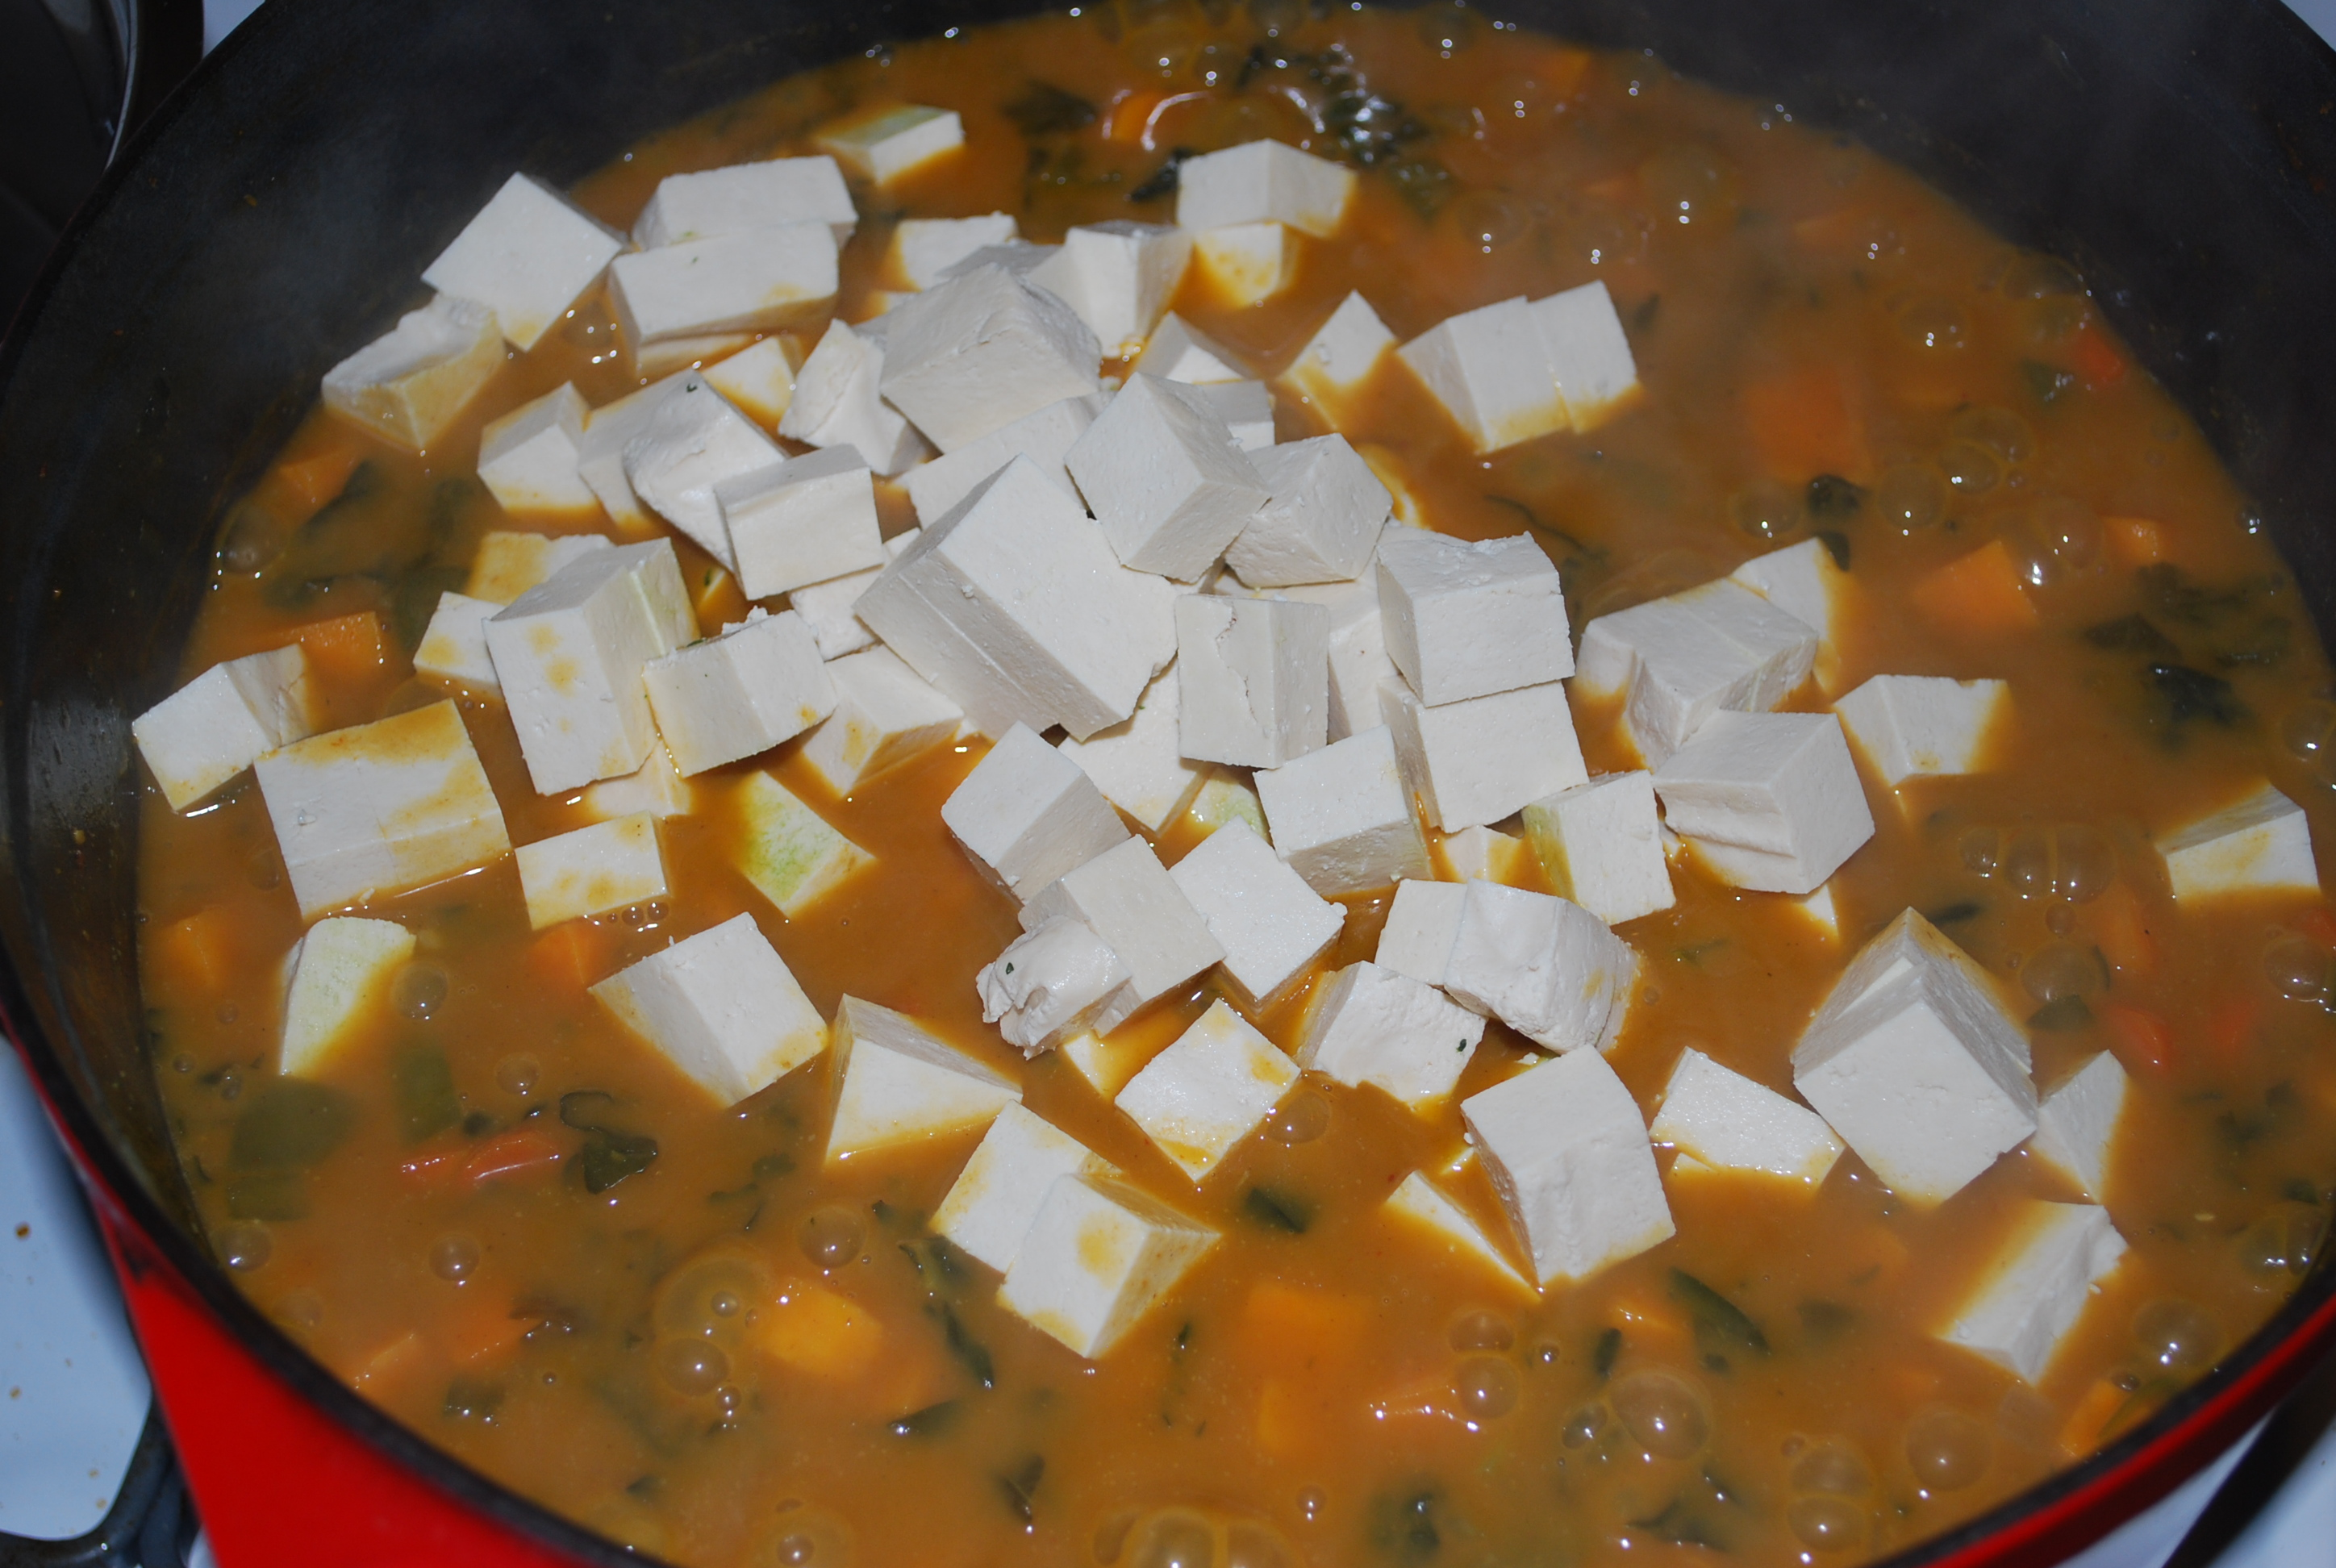 Add in the cubed tofu 10 minutes before it's done, stir well.